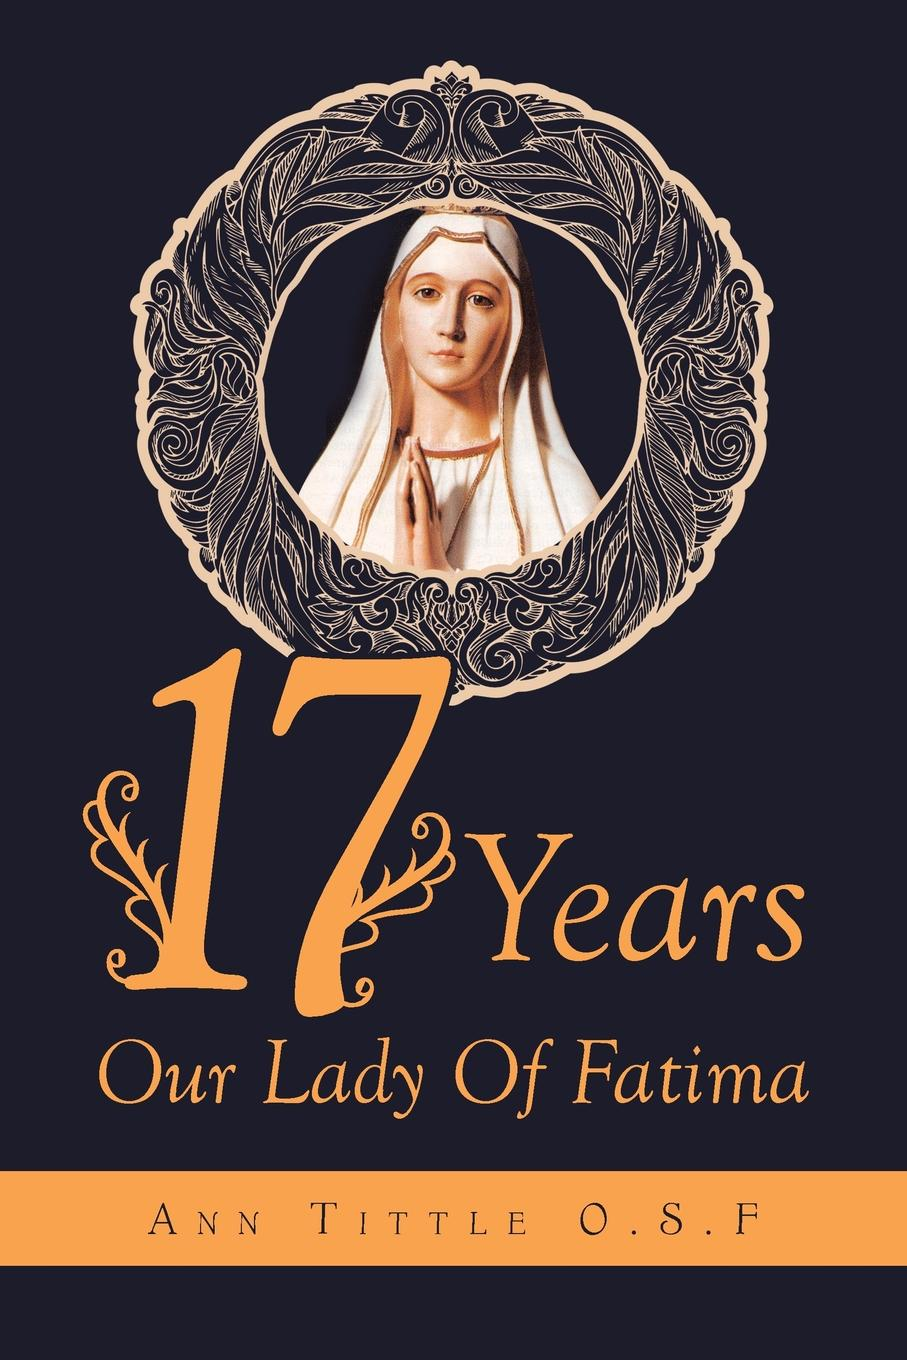 Ann Tittle O.S.F 17 Years Our Lady Of Fatima